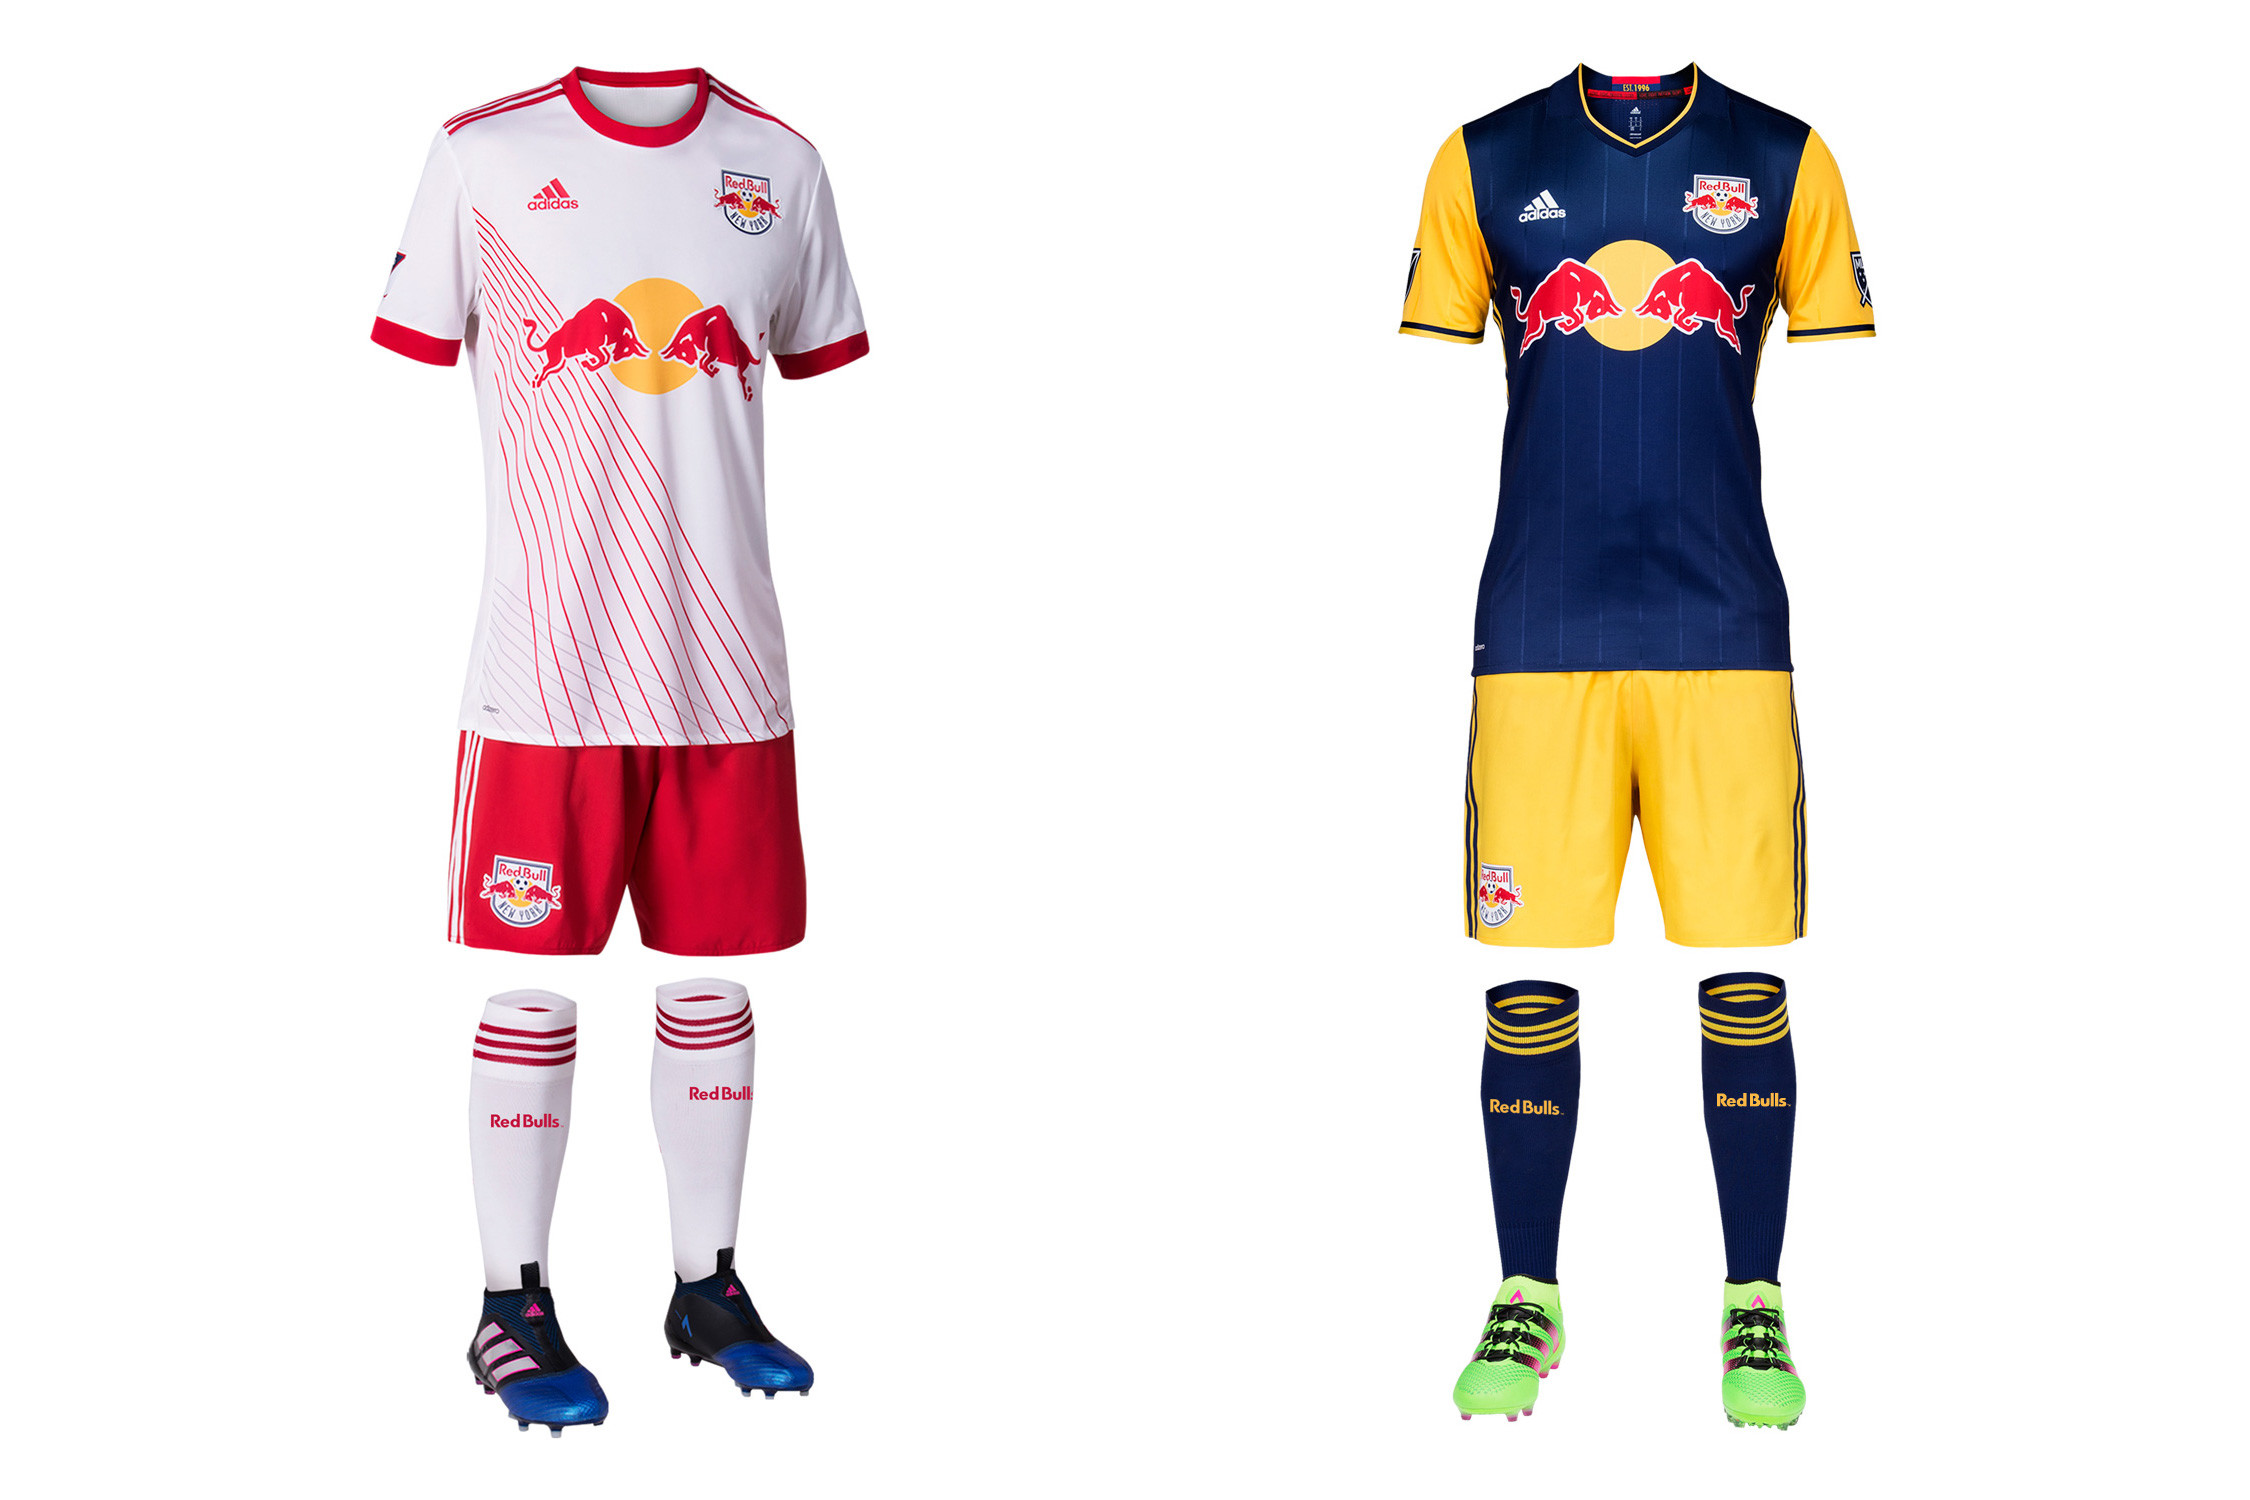 2250x1500 New York Red Bulls. We know the production schedule makes it impossible,  but it still seems the Red Bulls